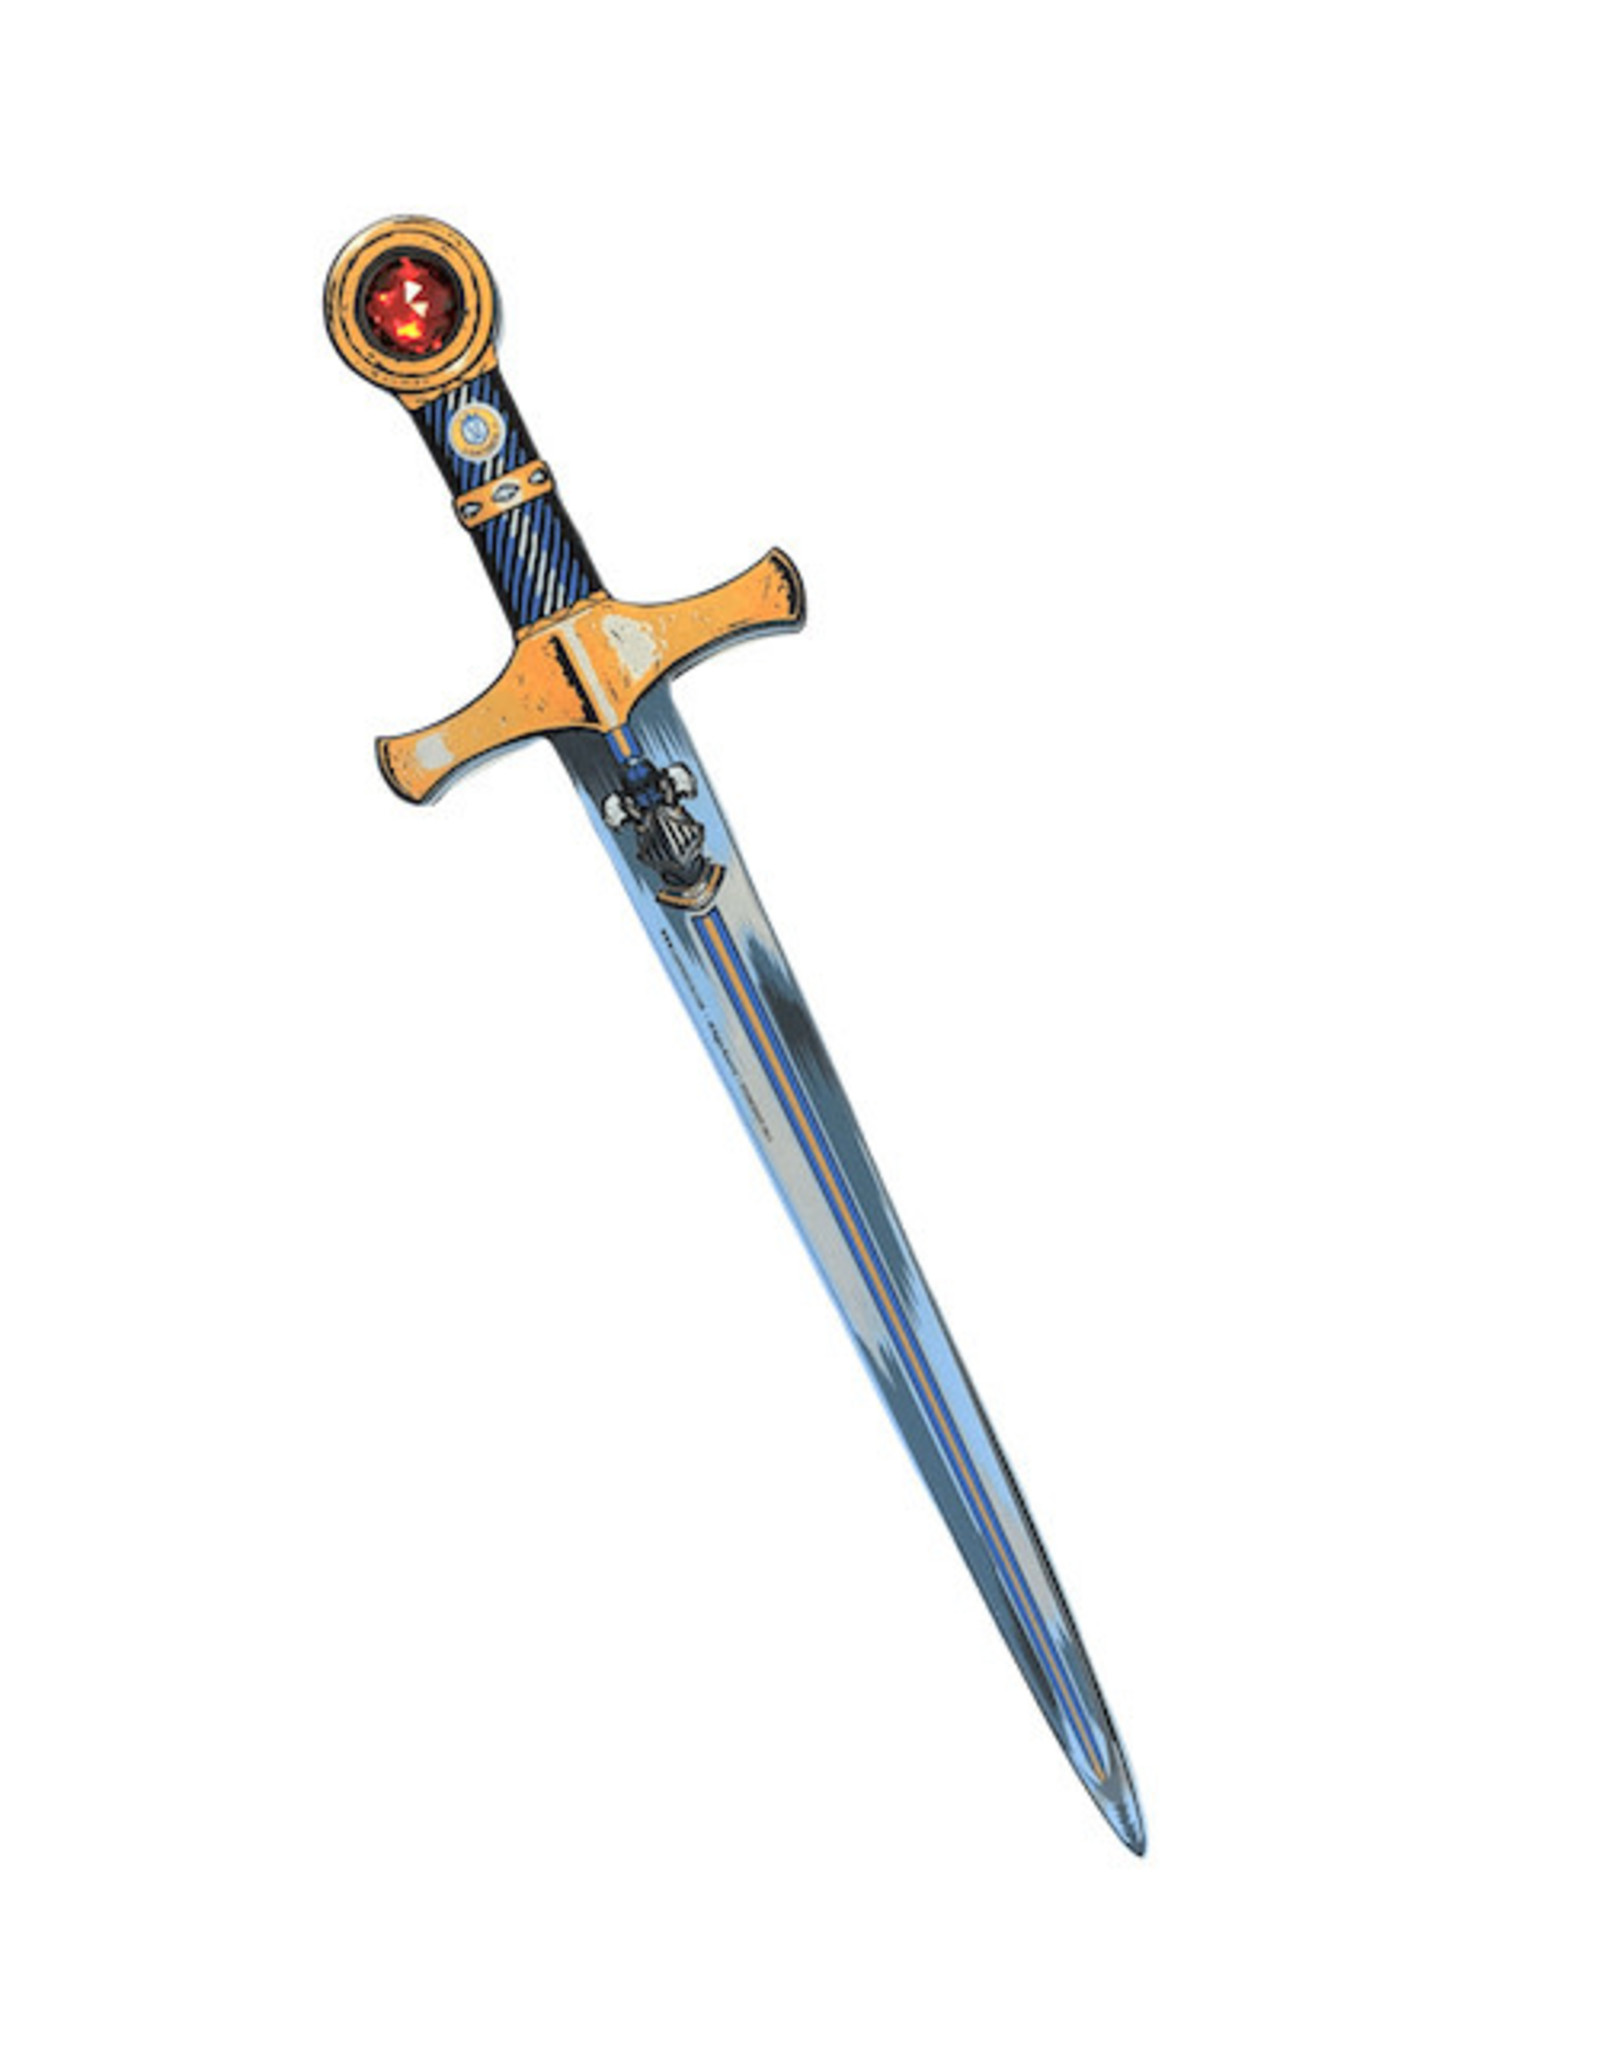 Hotaling Imports Mystery Knight Sword